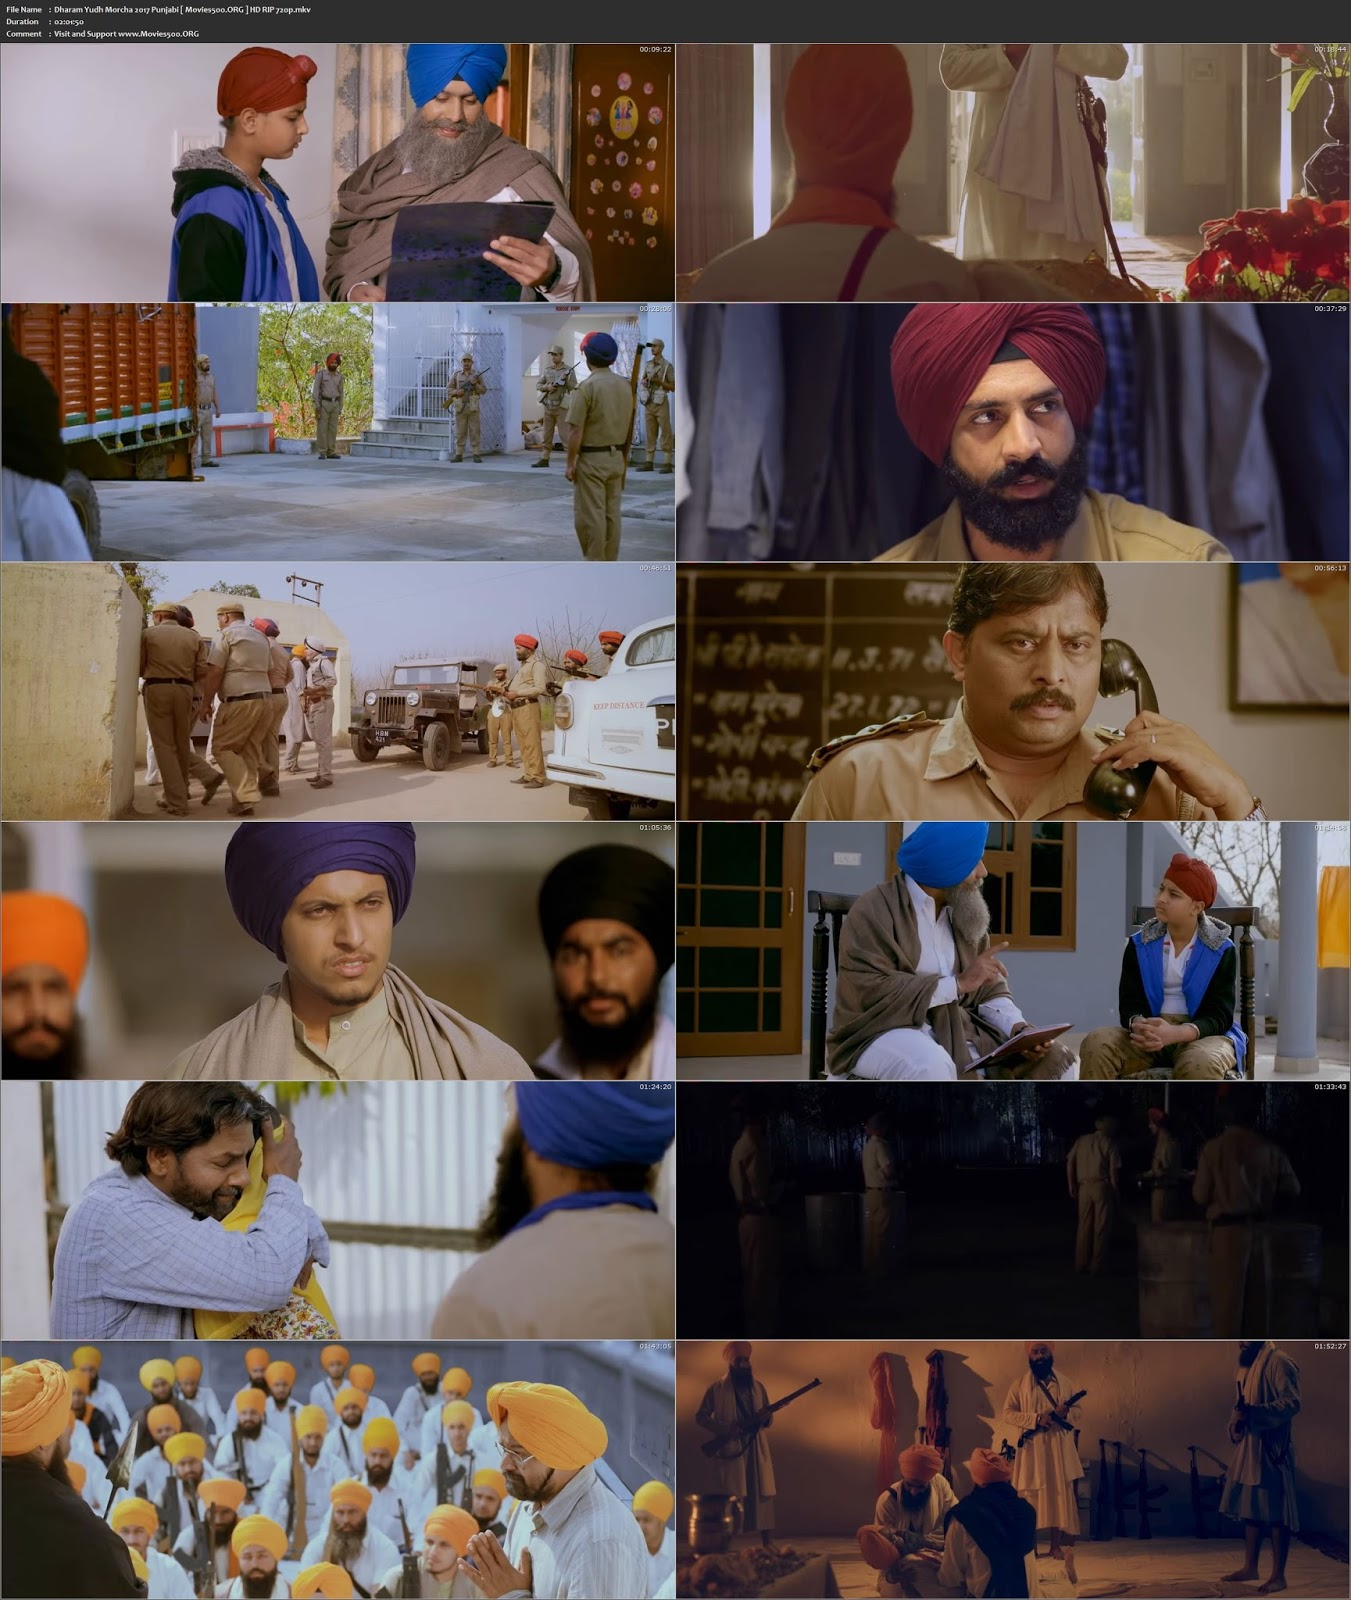 Dharam Yudh Morcha 2016 Punjabi Download HDRip 720p at 9966132.com